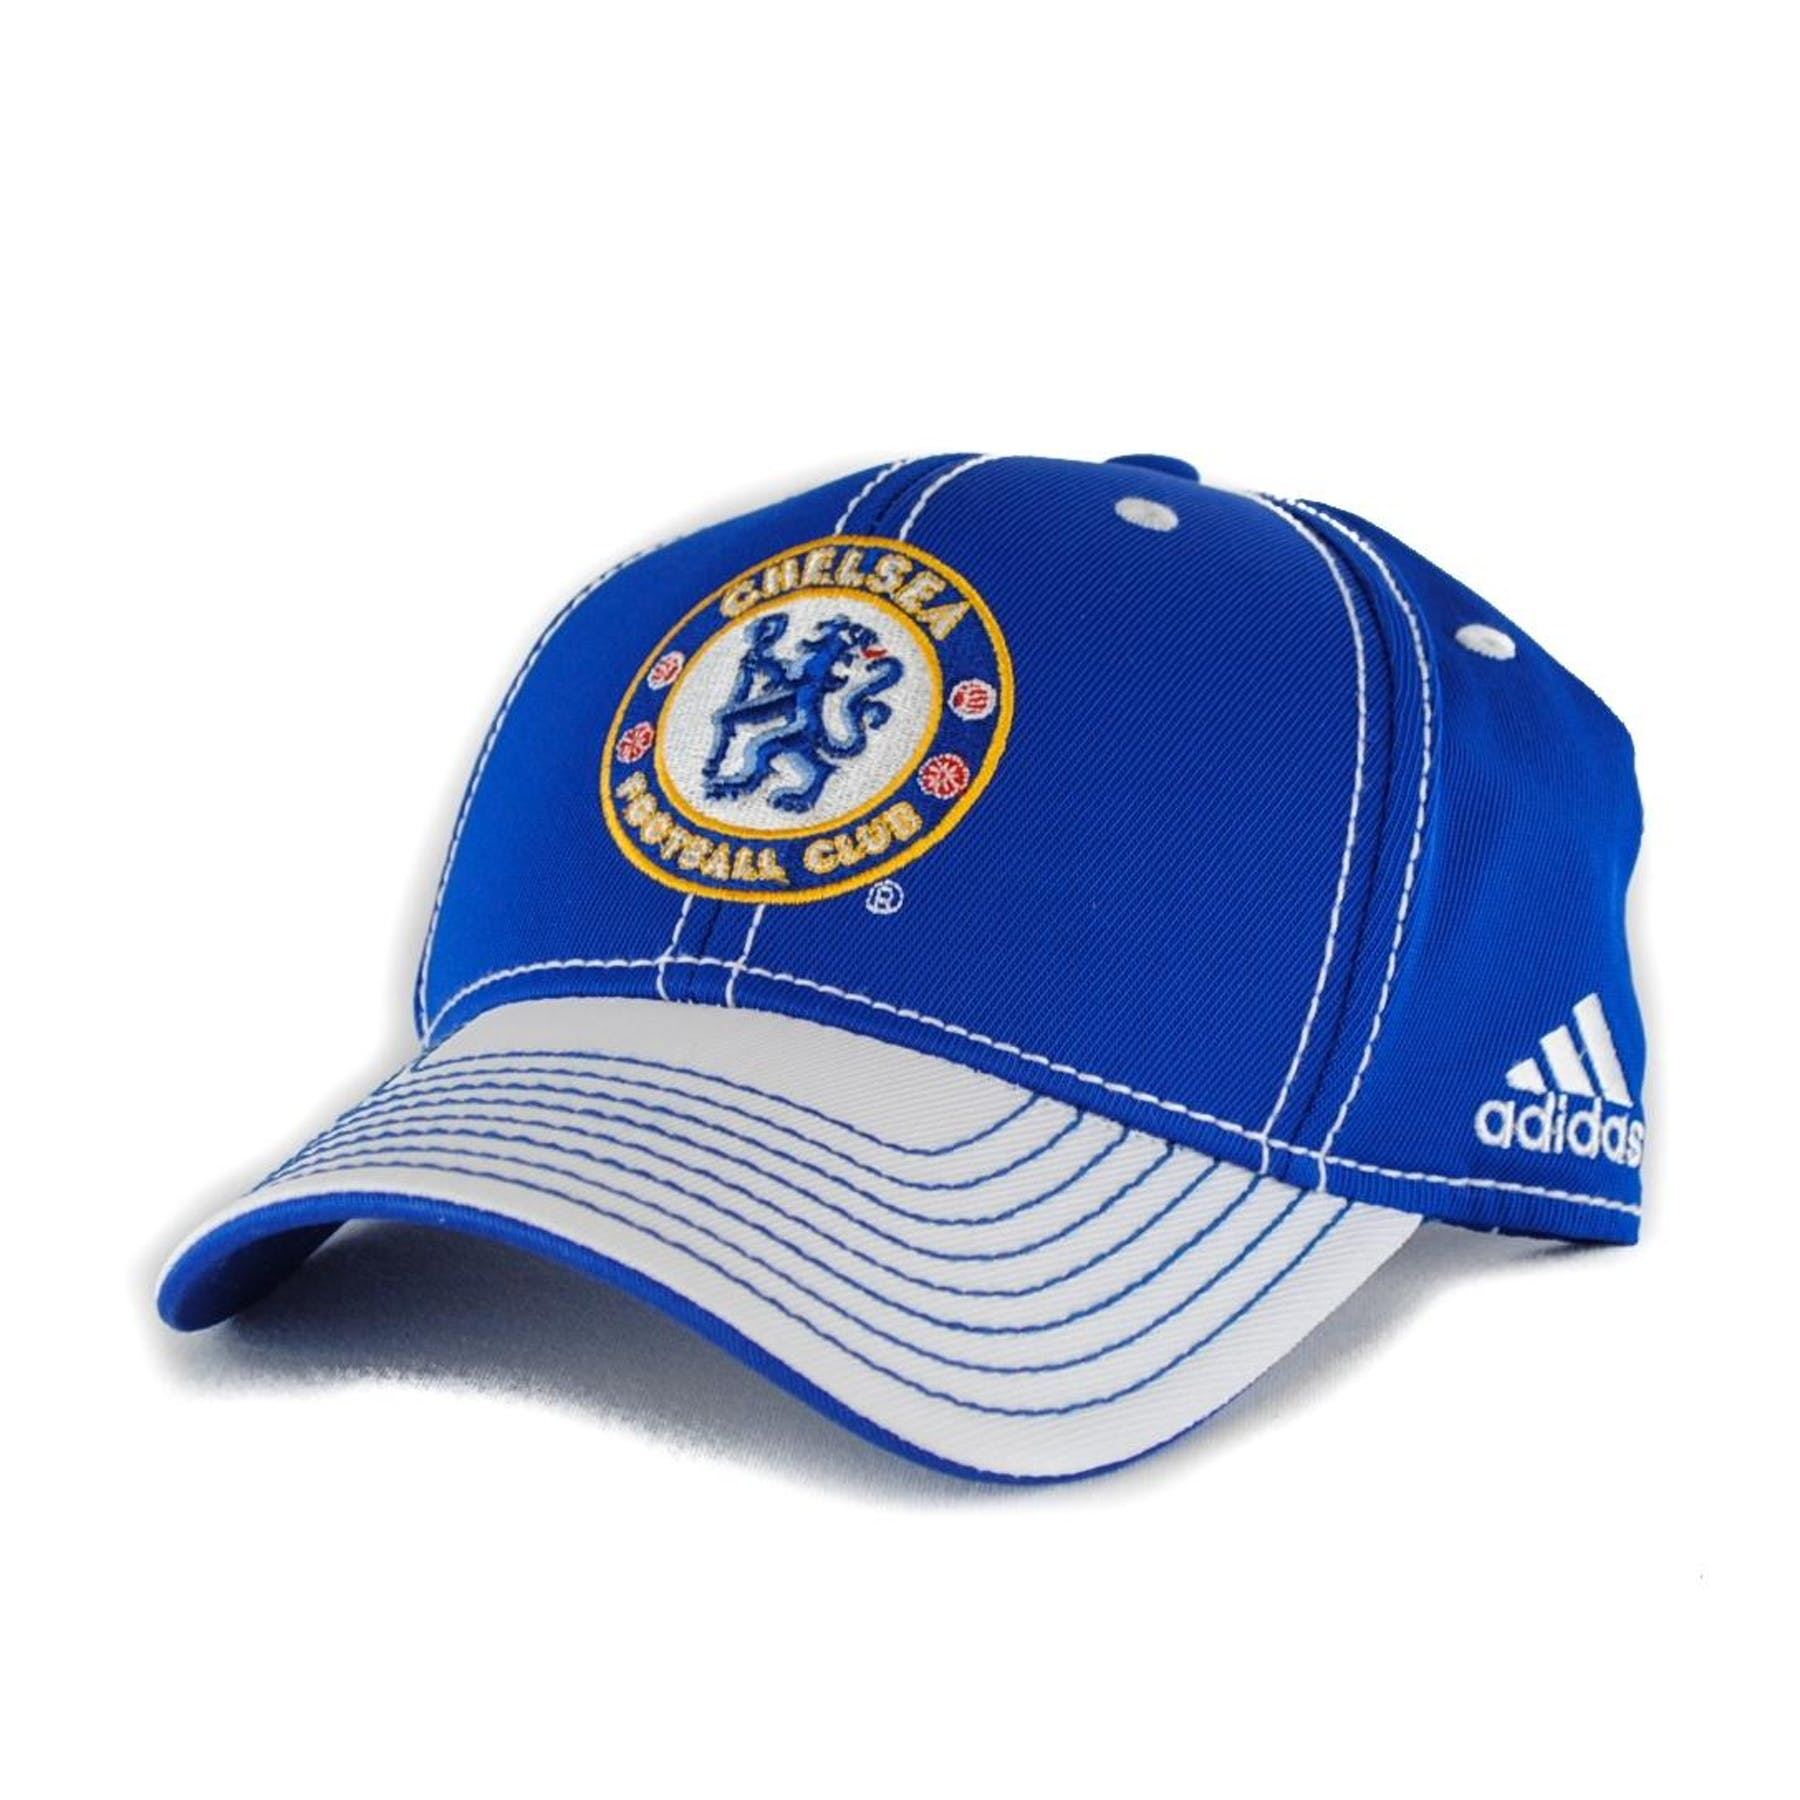 Chelsea Football Club Adidas Pro Shape Blue White Fitted Hat  52fb48cad2f